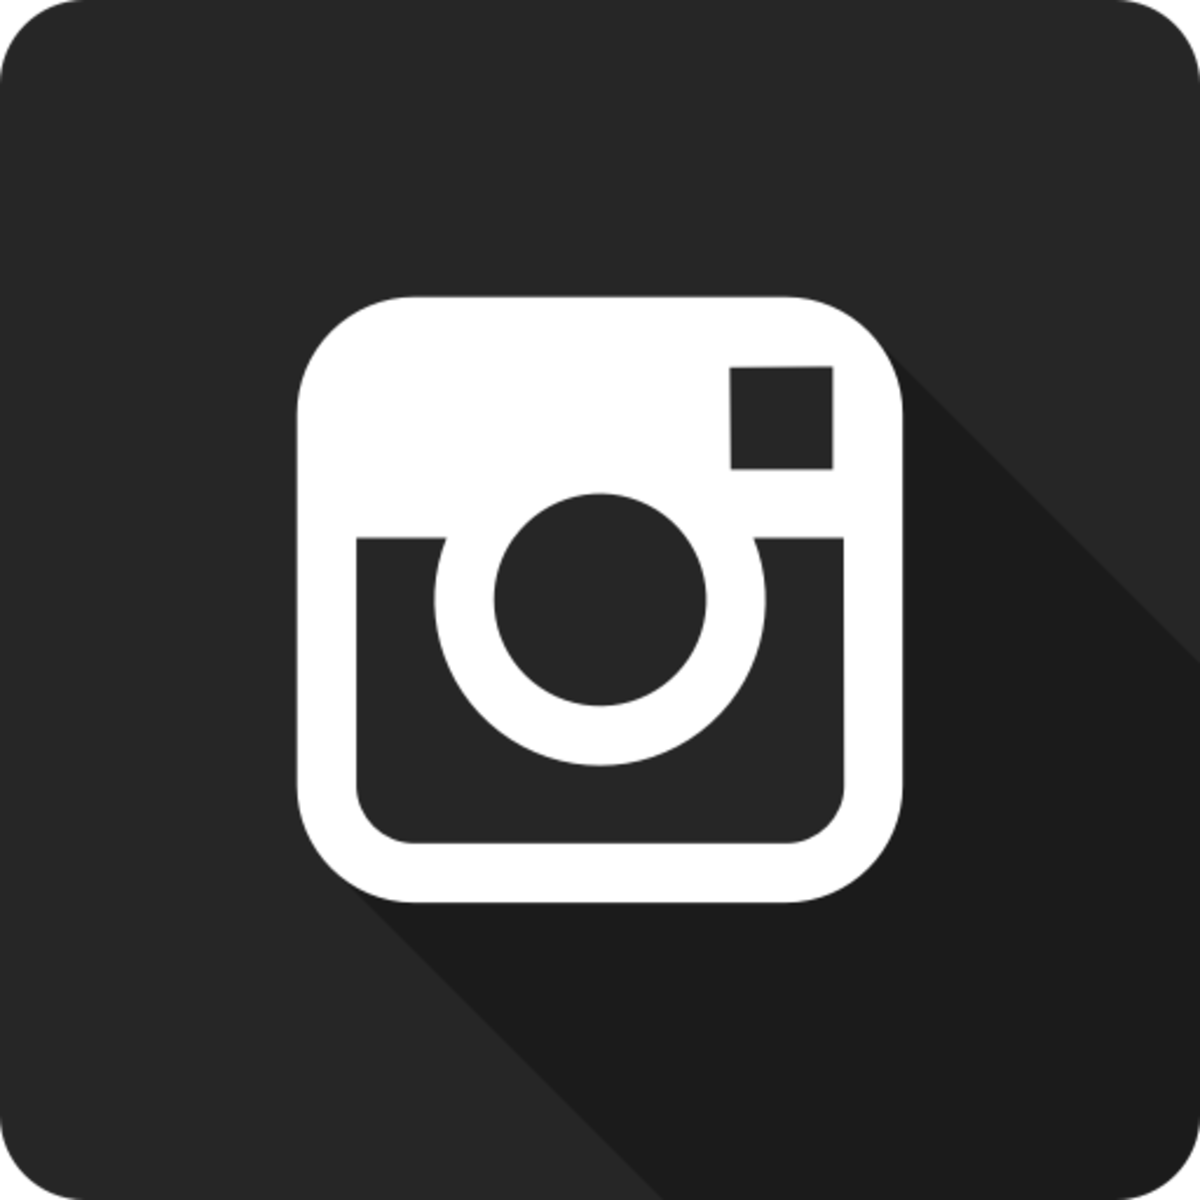 How to Format Pictures Correctly for Instagram